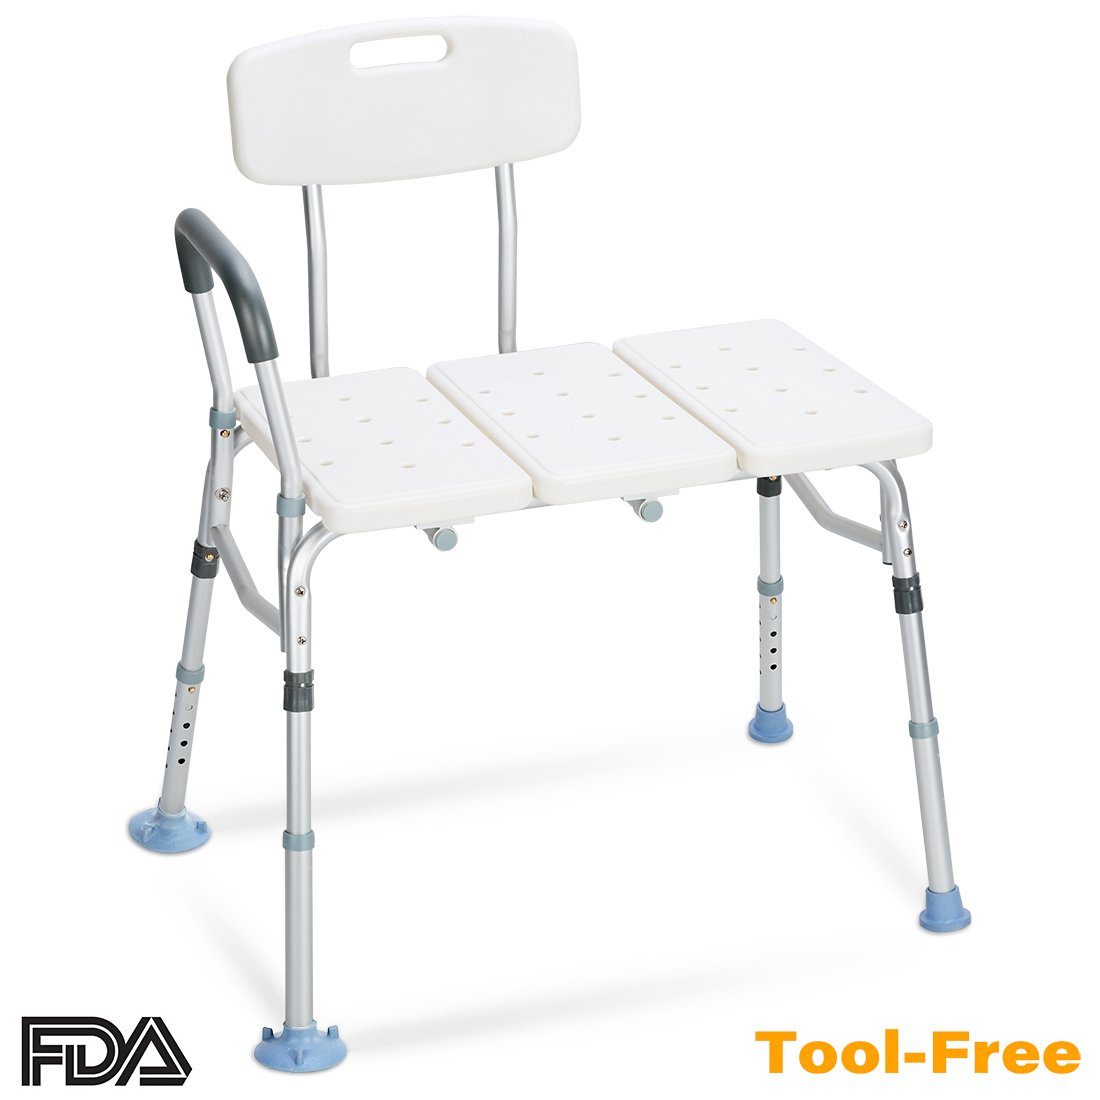 OasisSpace Tub Transfer Bench 400 lb - Heavy Duty Bath & Shower Transfer Bench - Adjustable Handicap Shower Chair with Reversible Backrest - Medical Bathroom Aid for Disabled, Seniors, Bariatric